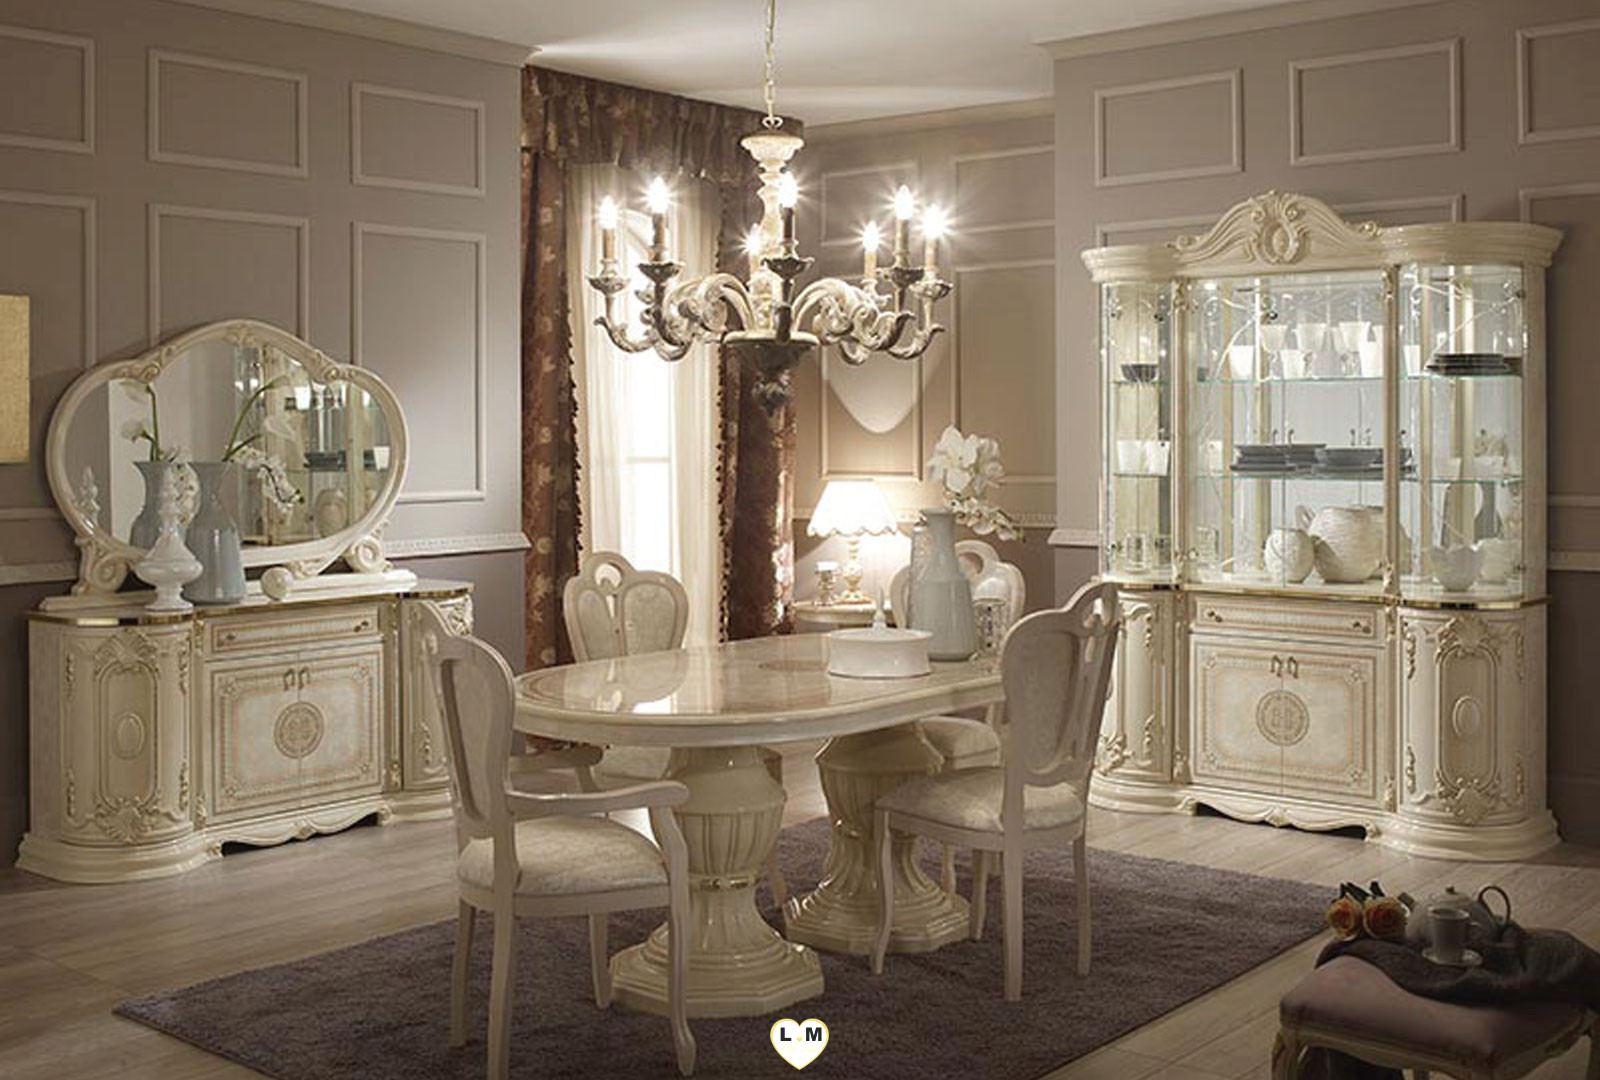 garbo laque ivoire salle a manger baroque la table repas ovale allonge lignemeuble com. Black Bedroom Furniture Sets. Home Design Ideas